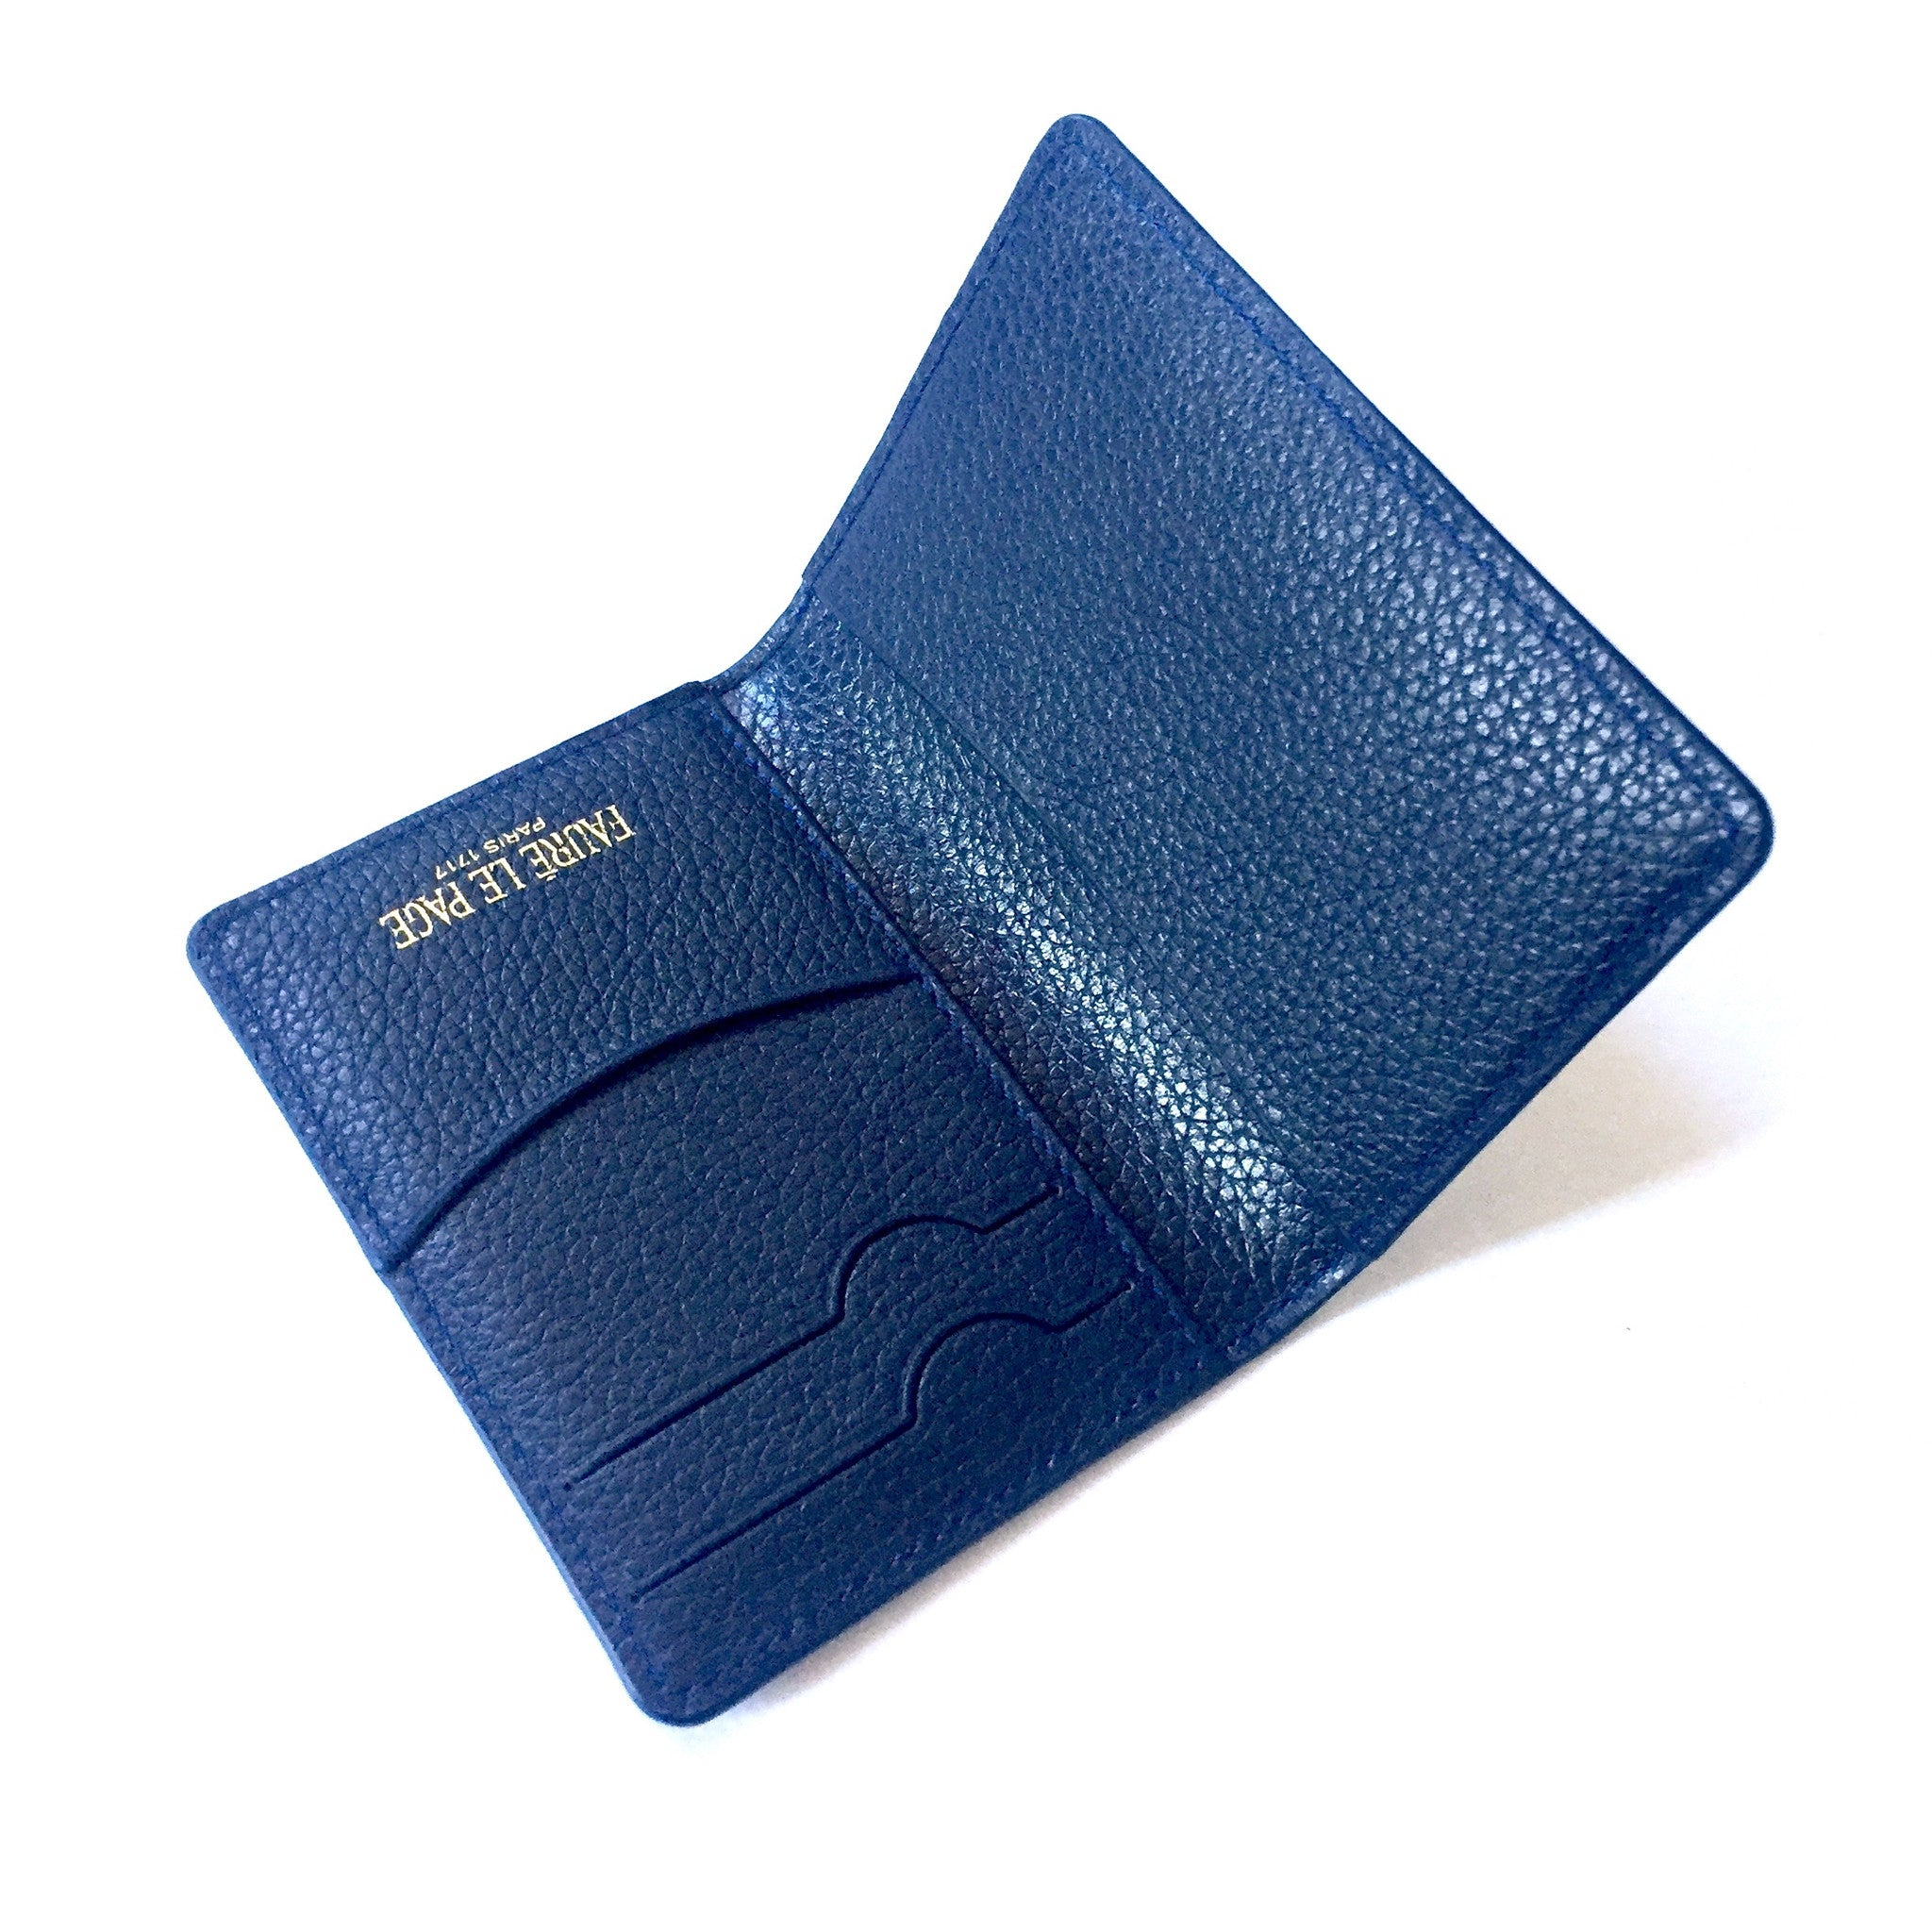 Faure Le Page - Paris Blue Mini Bifold Wallet